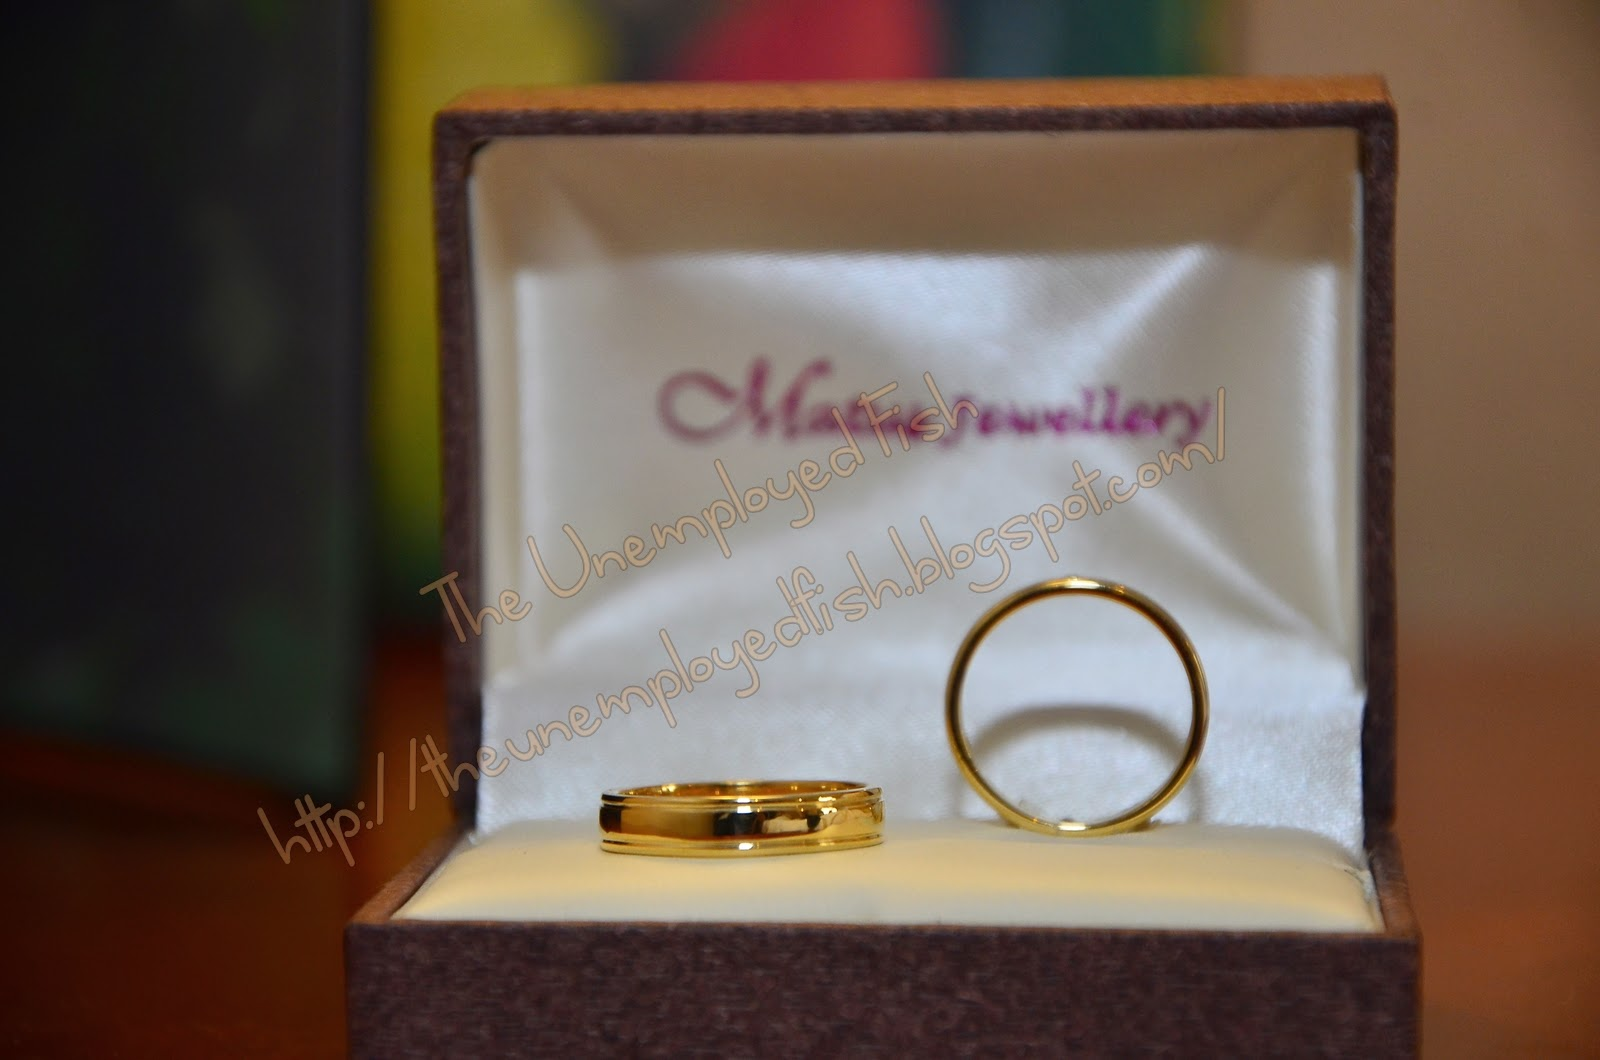 my black and white affair wedding ring discount wedding rings I love our wedding rings and thanks to my beloved grandfather who sponsored our wedding rings